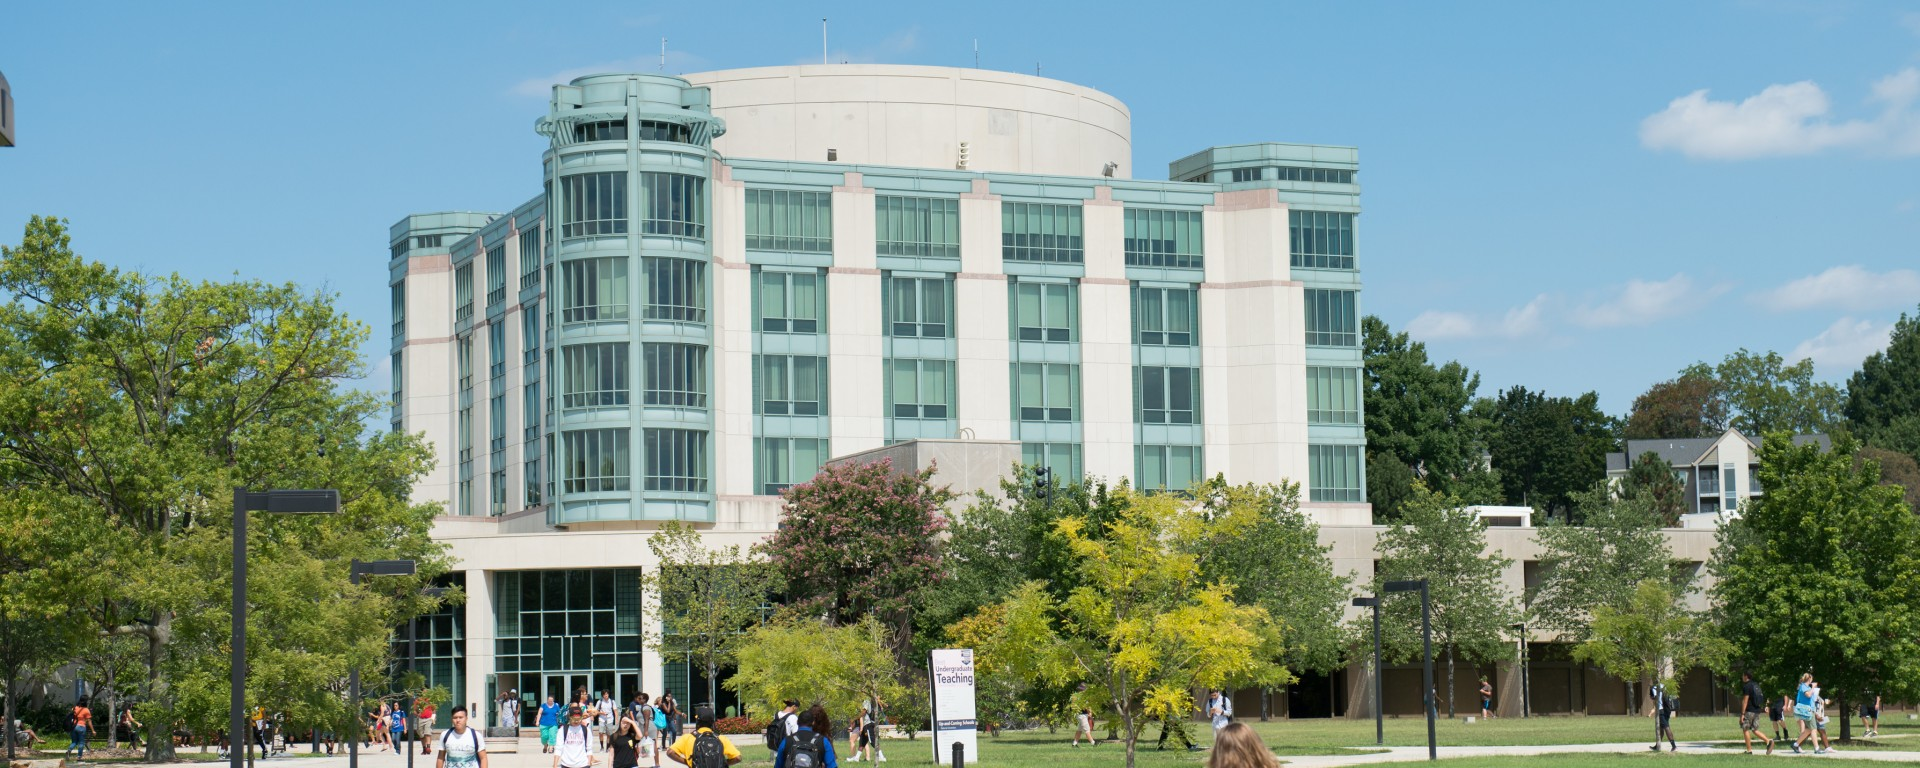 UMBC Library Summer 2015 (cropped)